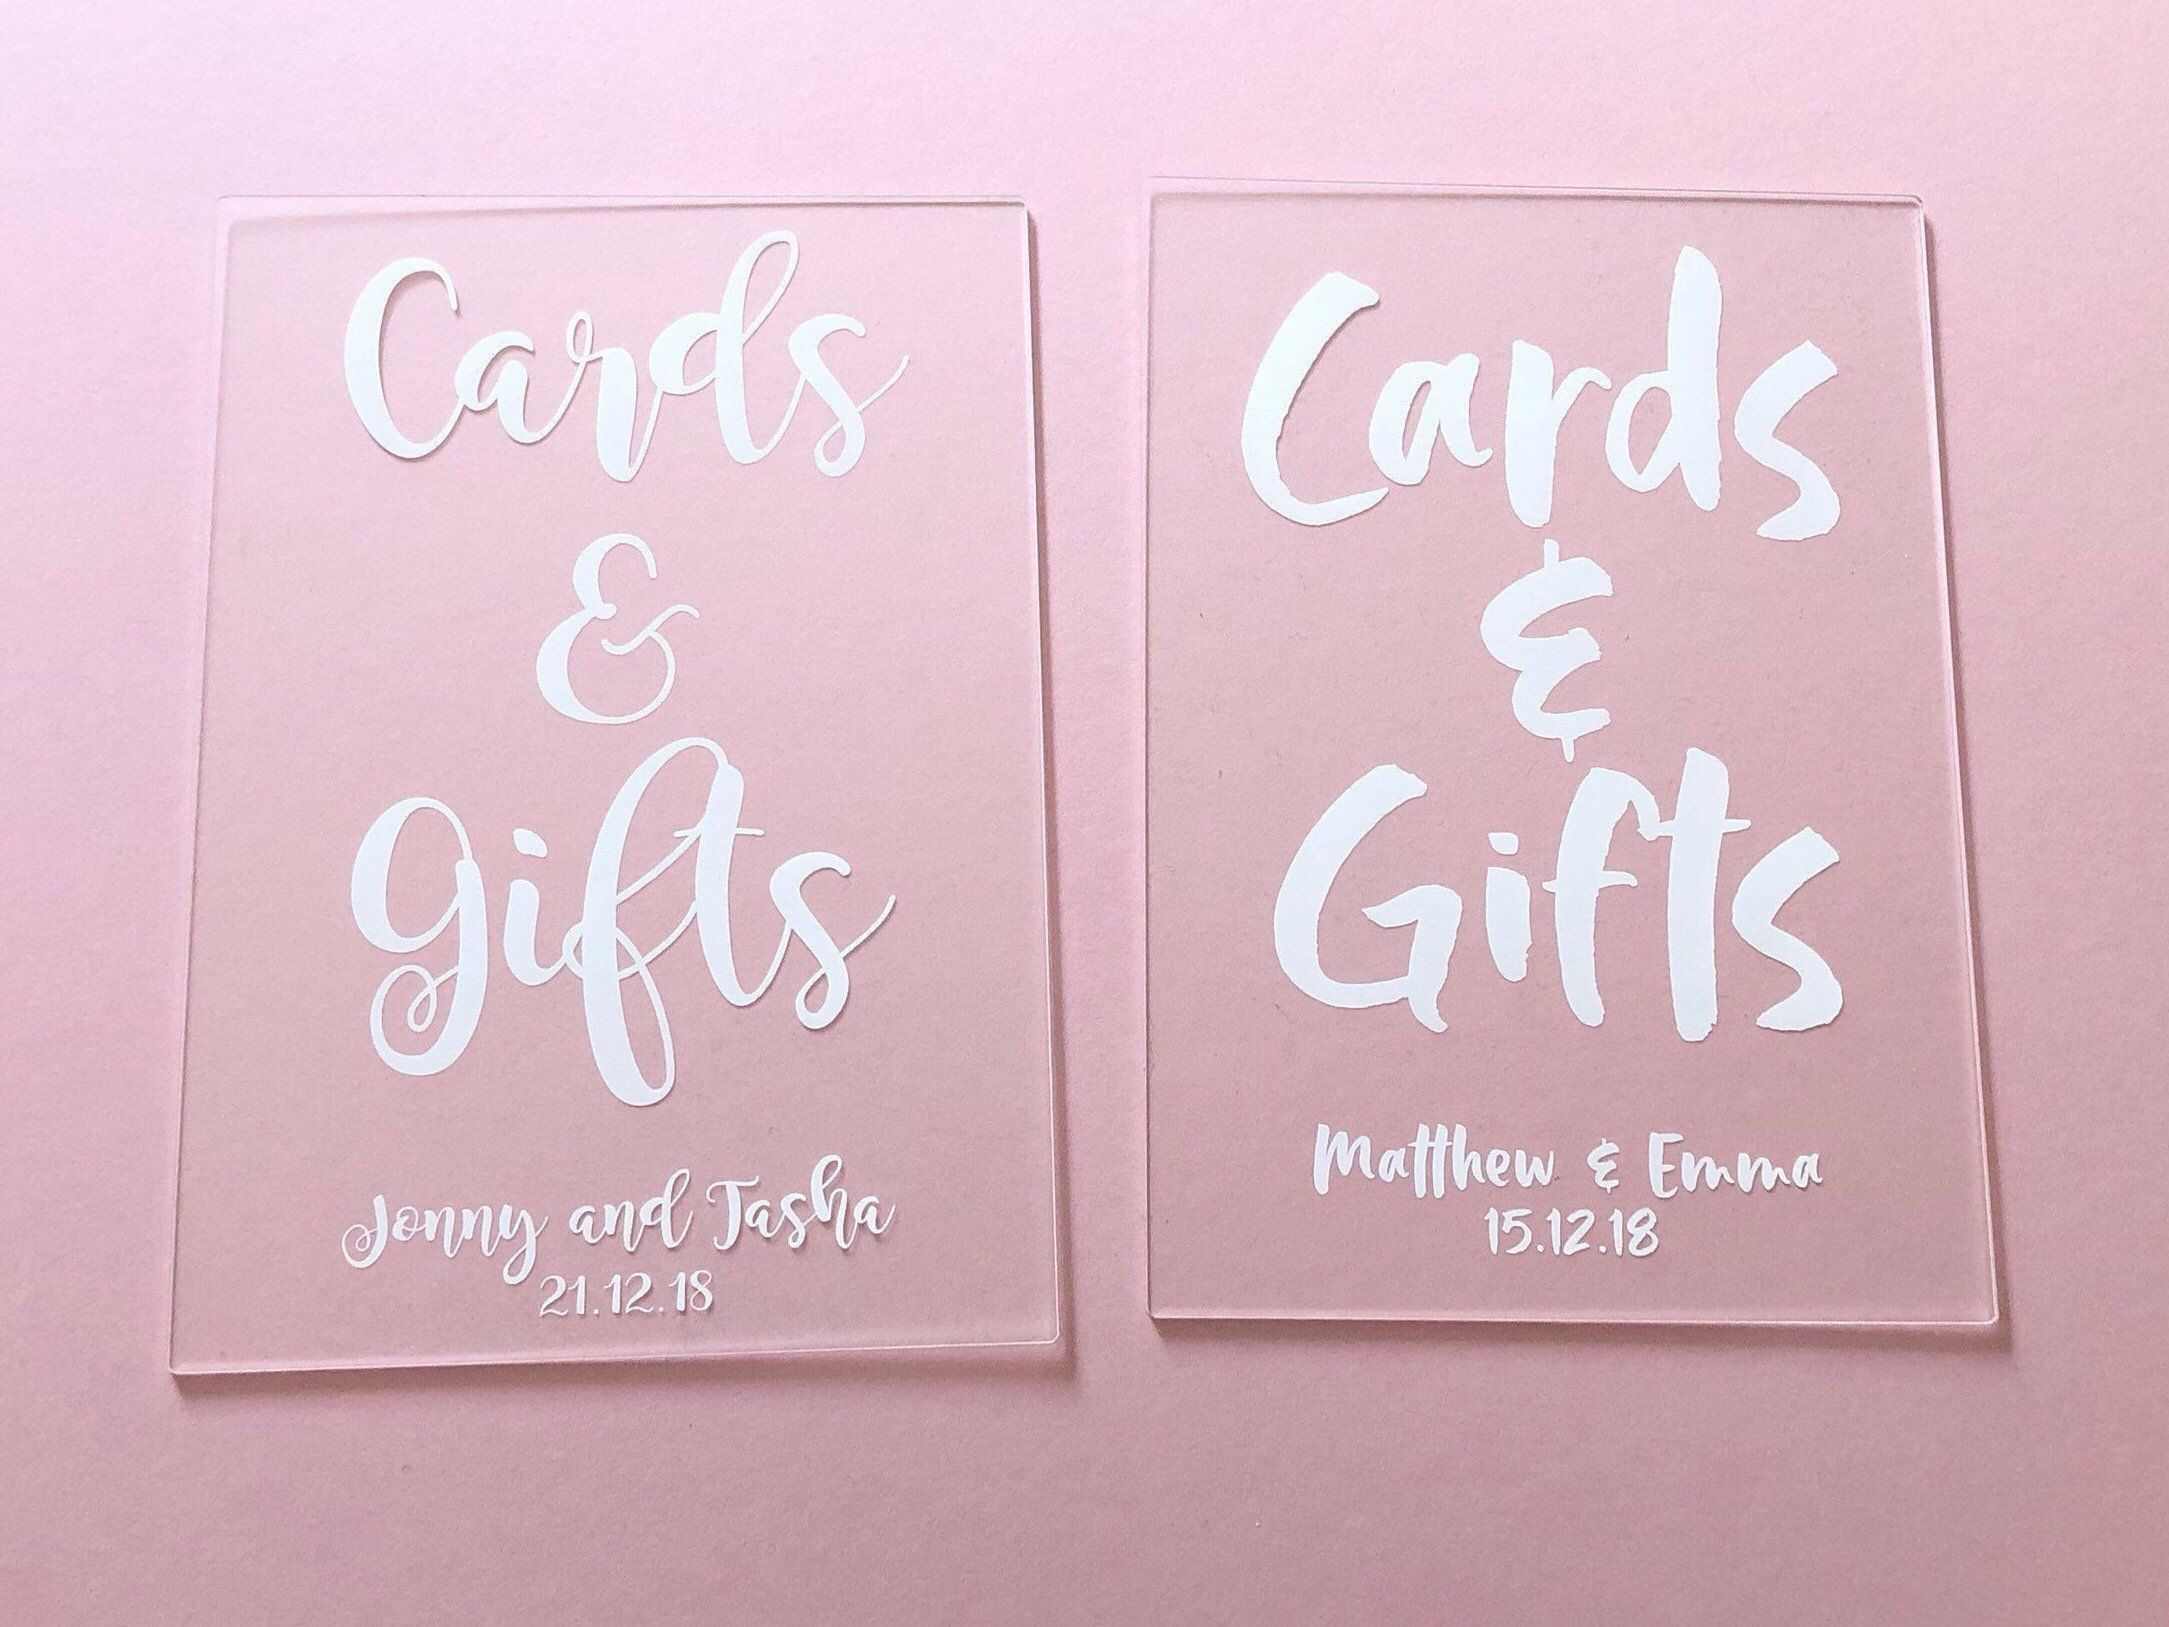 Perspex Acrylic Wedding Signs Cards & Gifts Sign Our